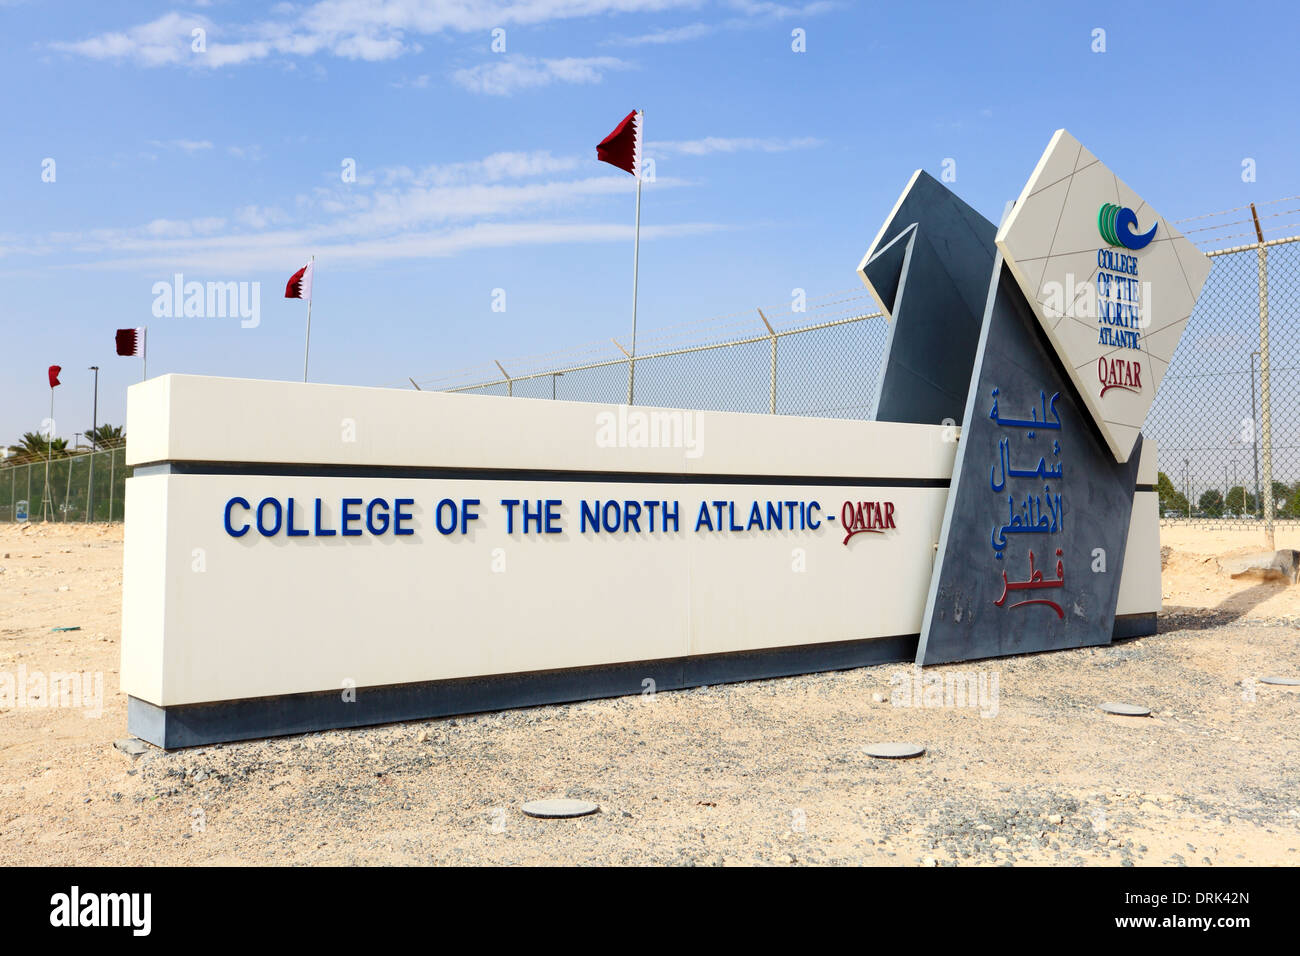 College of the North Atlantic in Doha. Qatar, Middle East - Stock Image